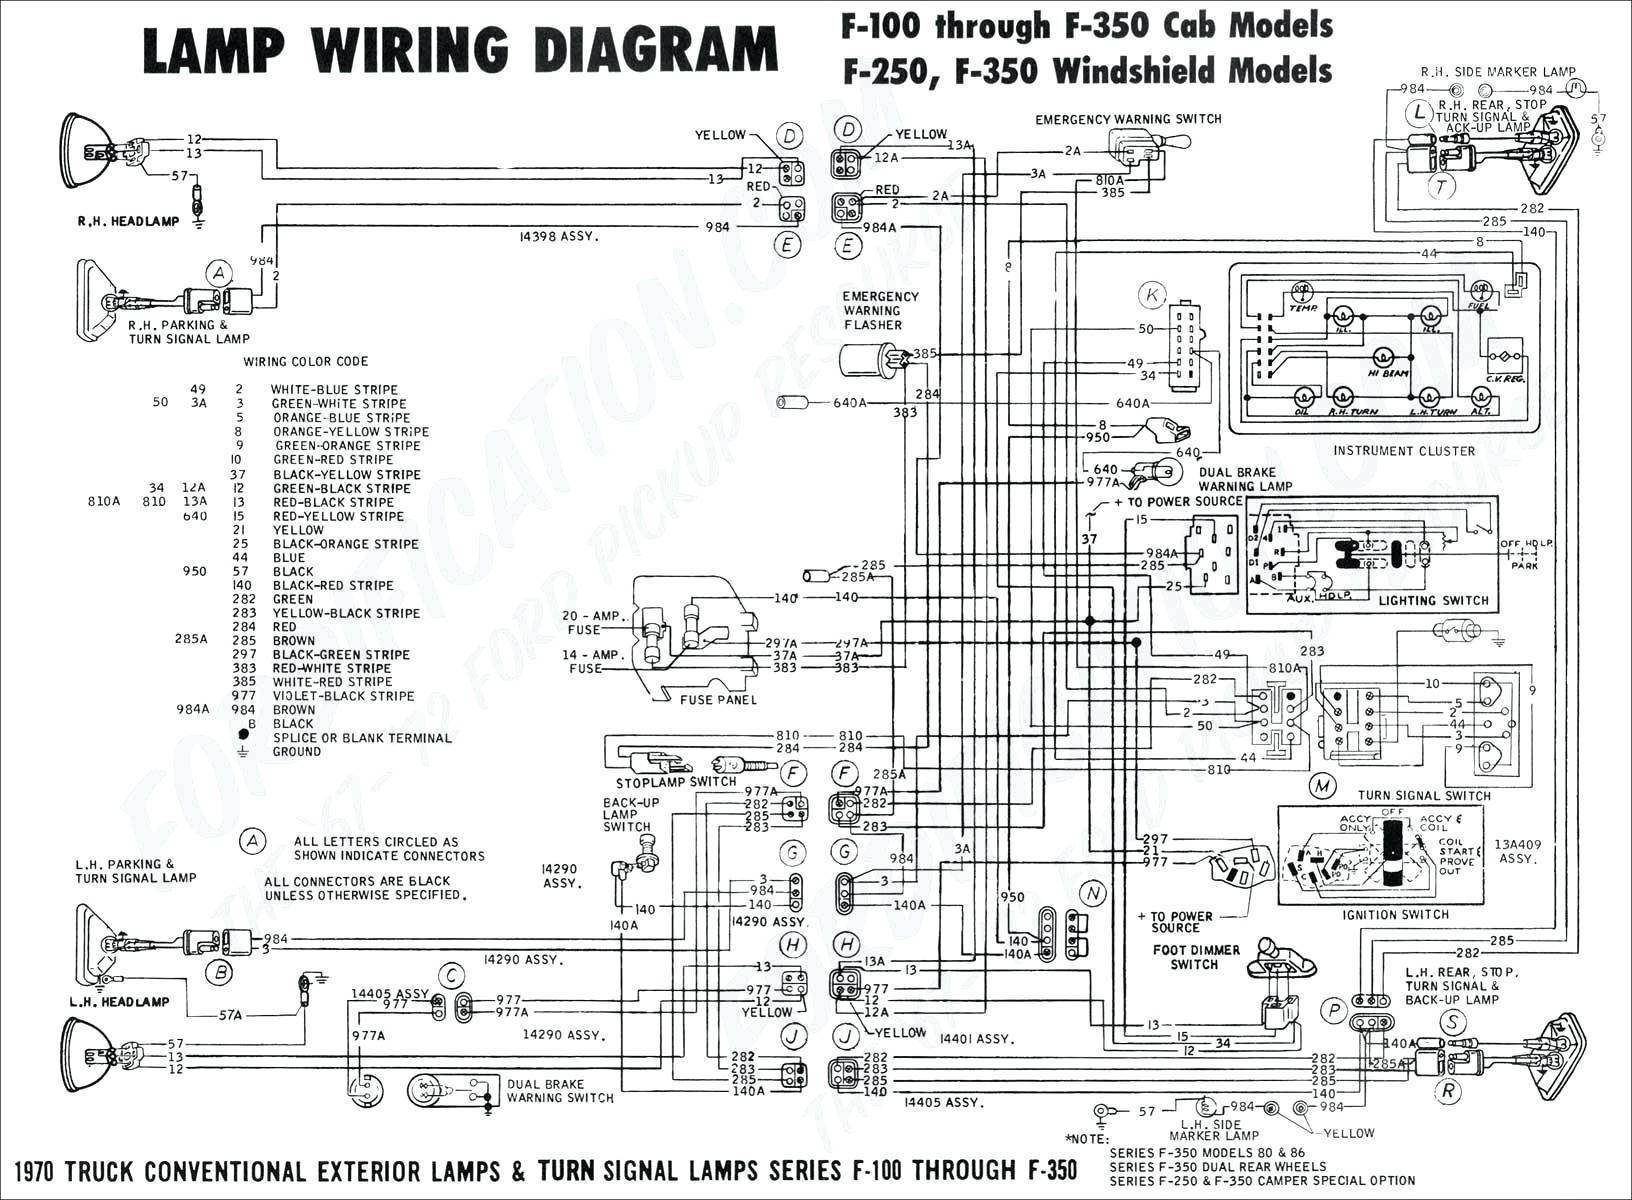 2003 Saturn Vue Wiring Diagram ford Ecm Wiring Diagrams Data Wiring Diagrams • Of 2003 Saturn Vue Wiring Diagram 2004 Saturn Vue Schematic Data Wiring •